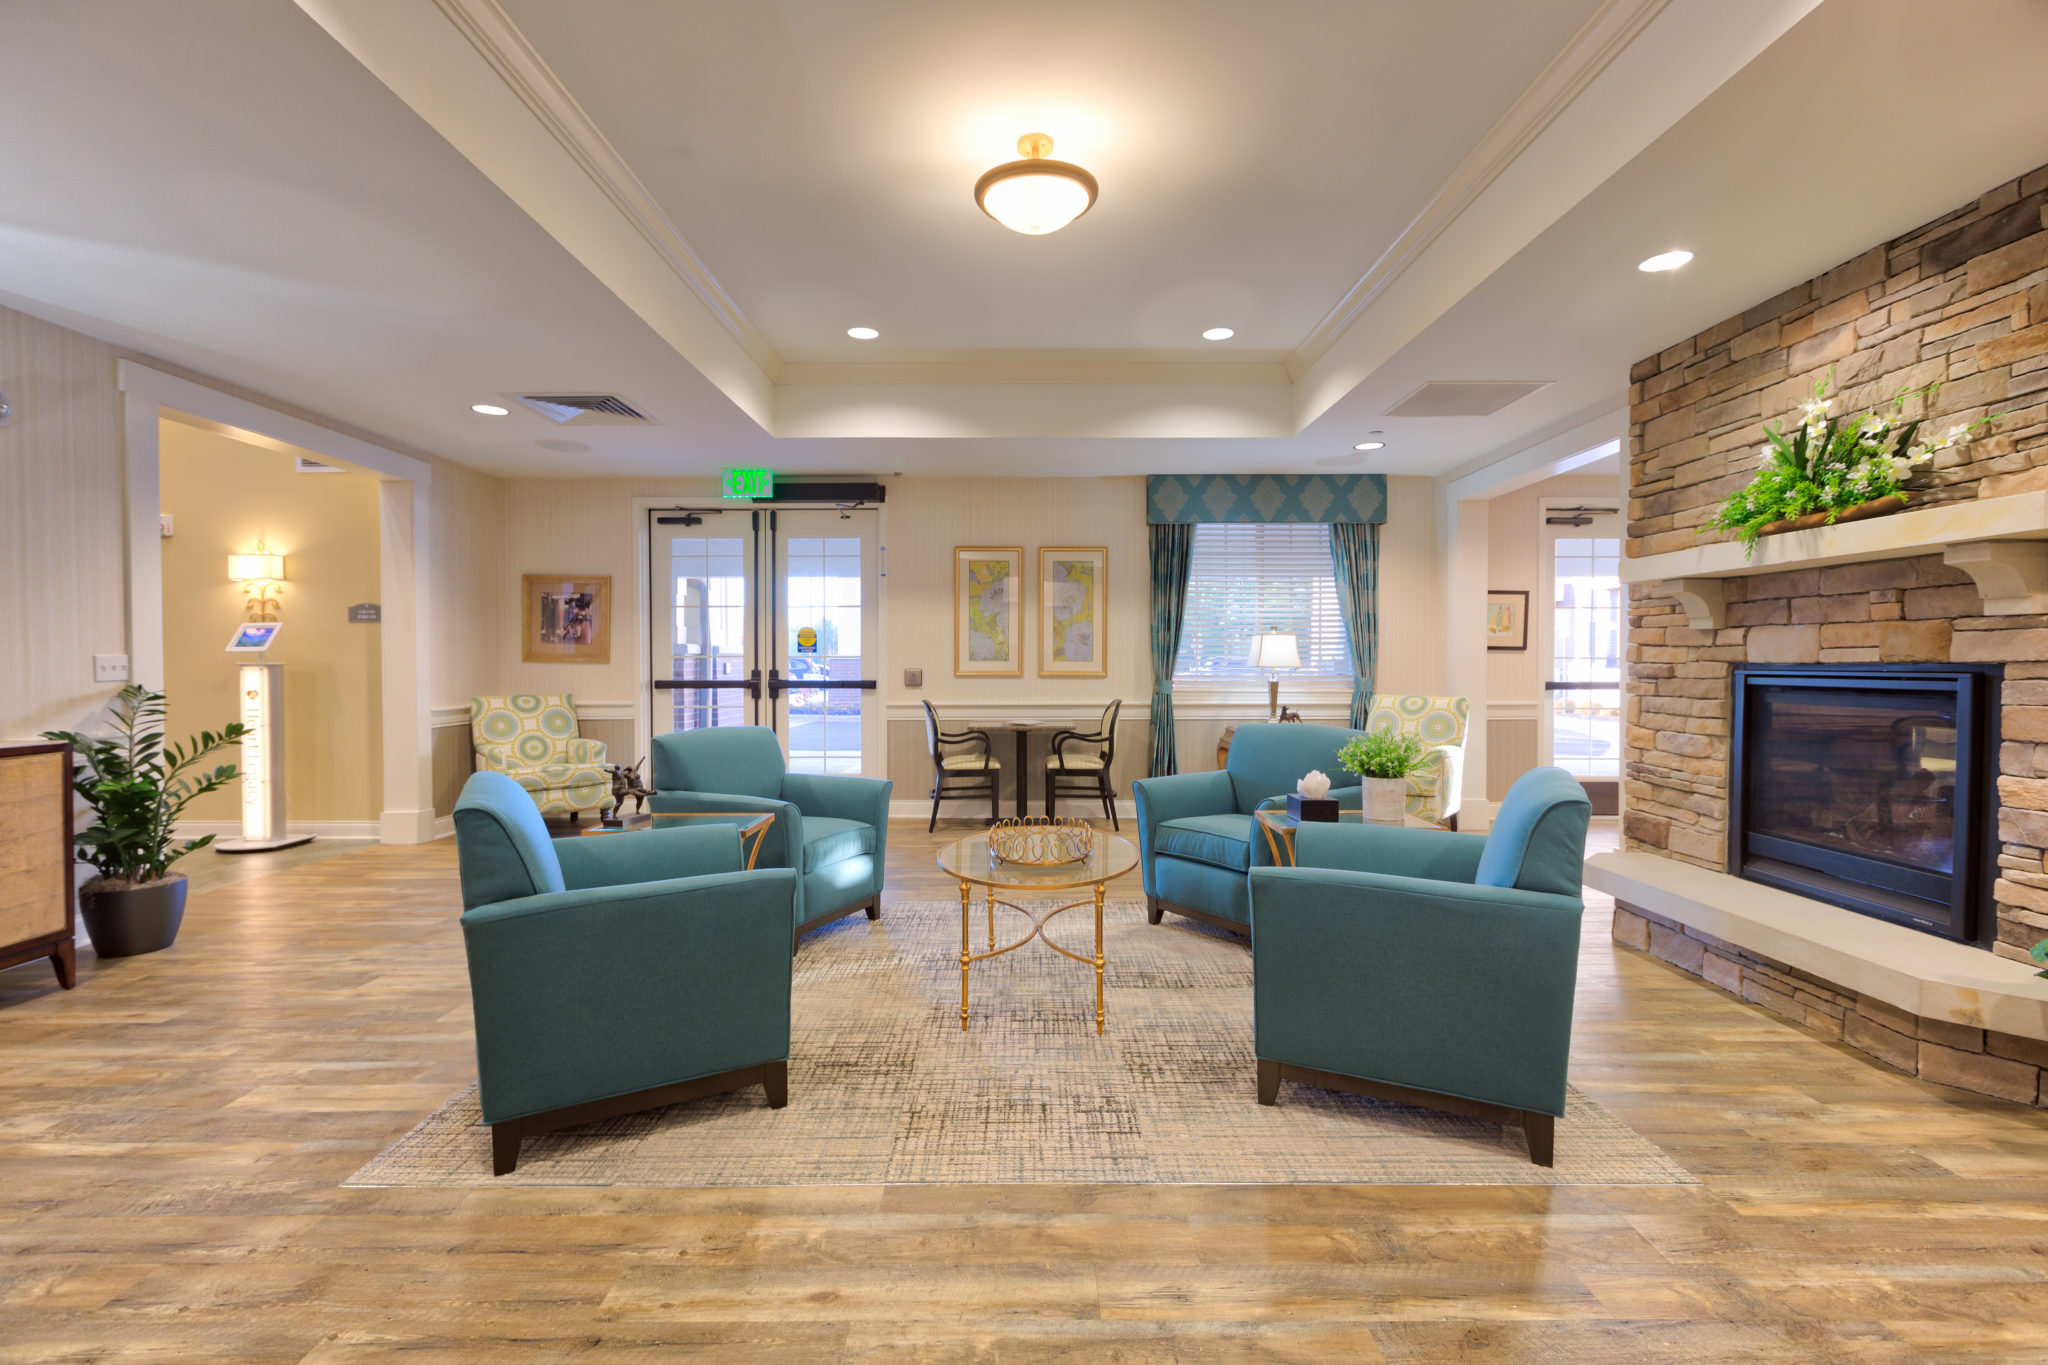 Sycamore Creek Independent Living Lobby Sitting Area.jpg